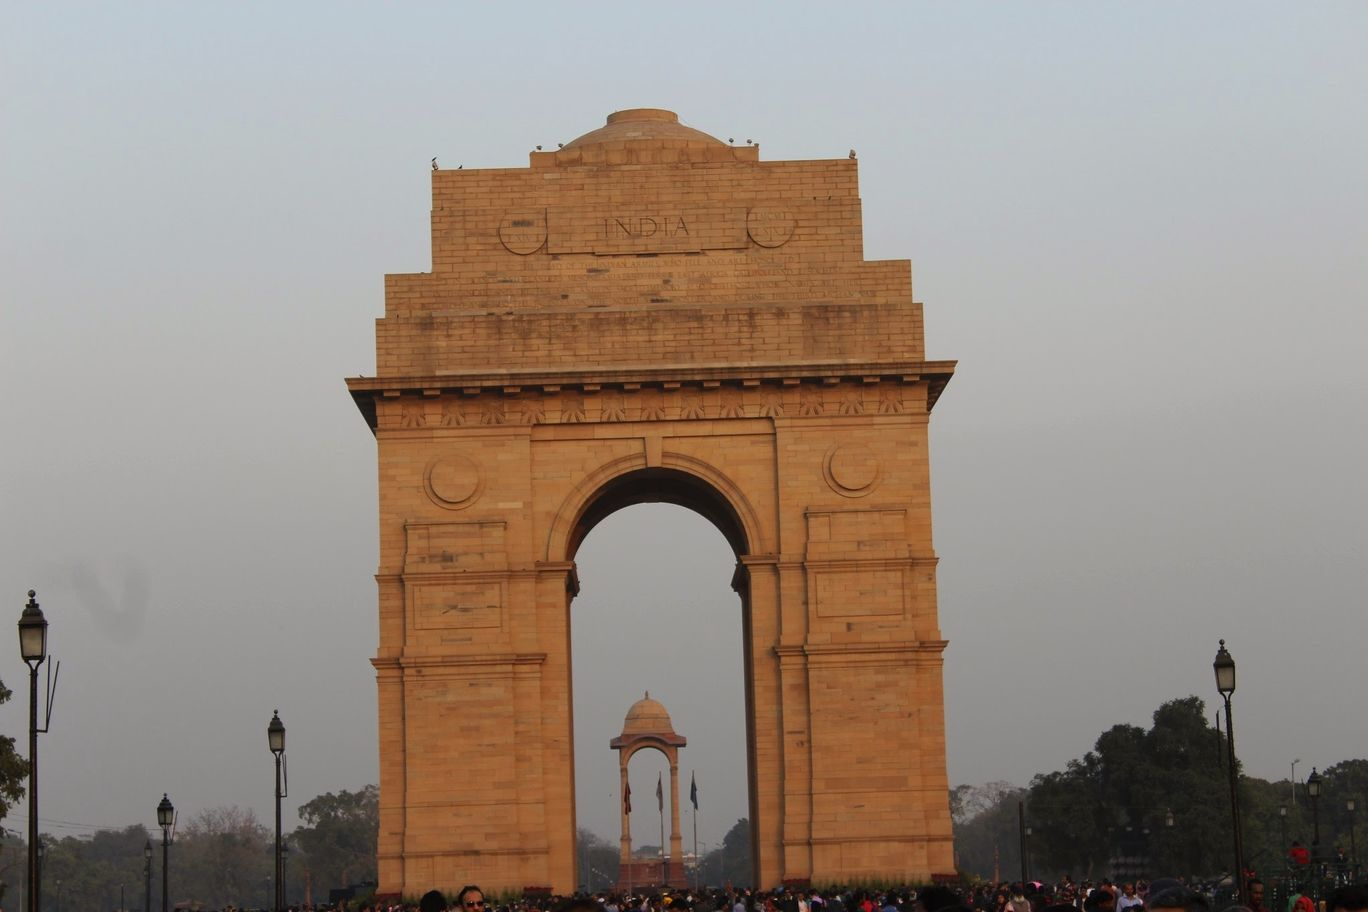 Photo of India Gate By Praveen Vendra